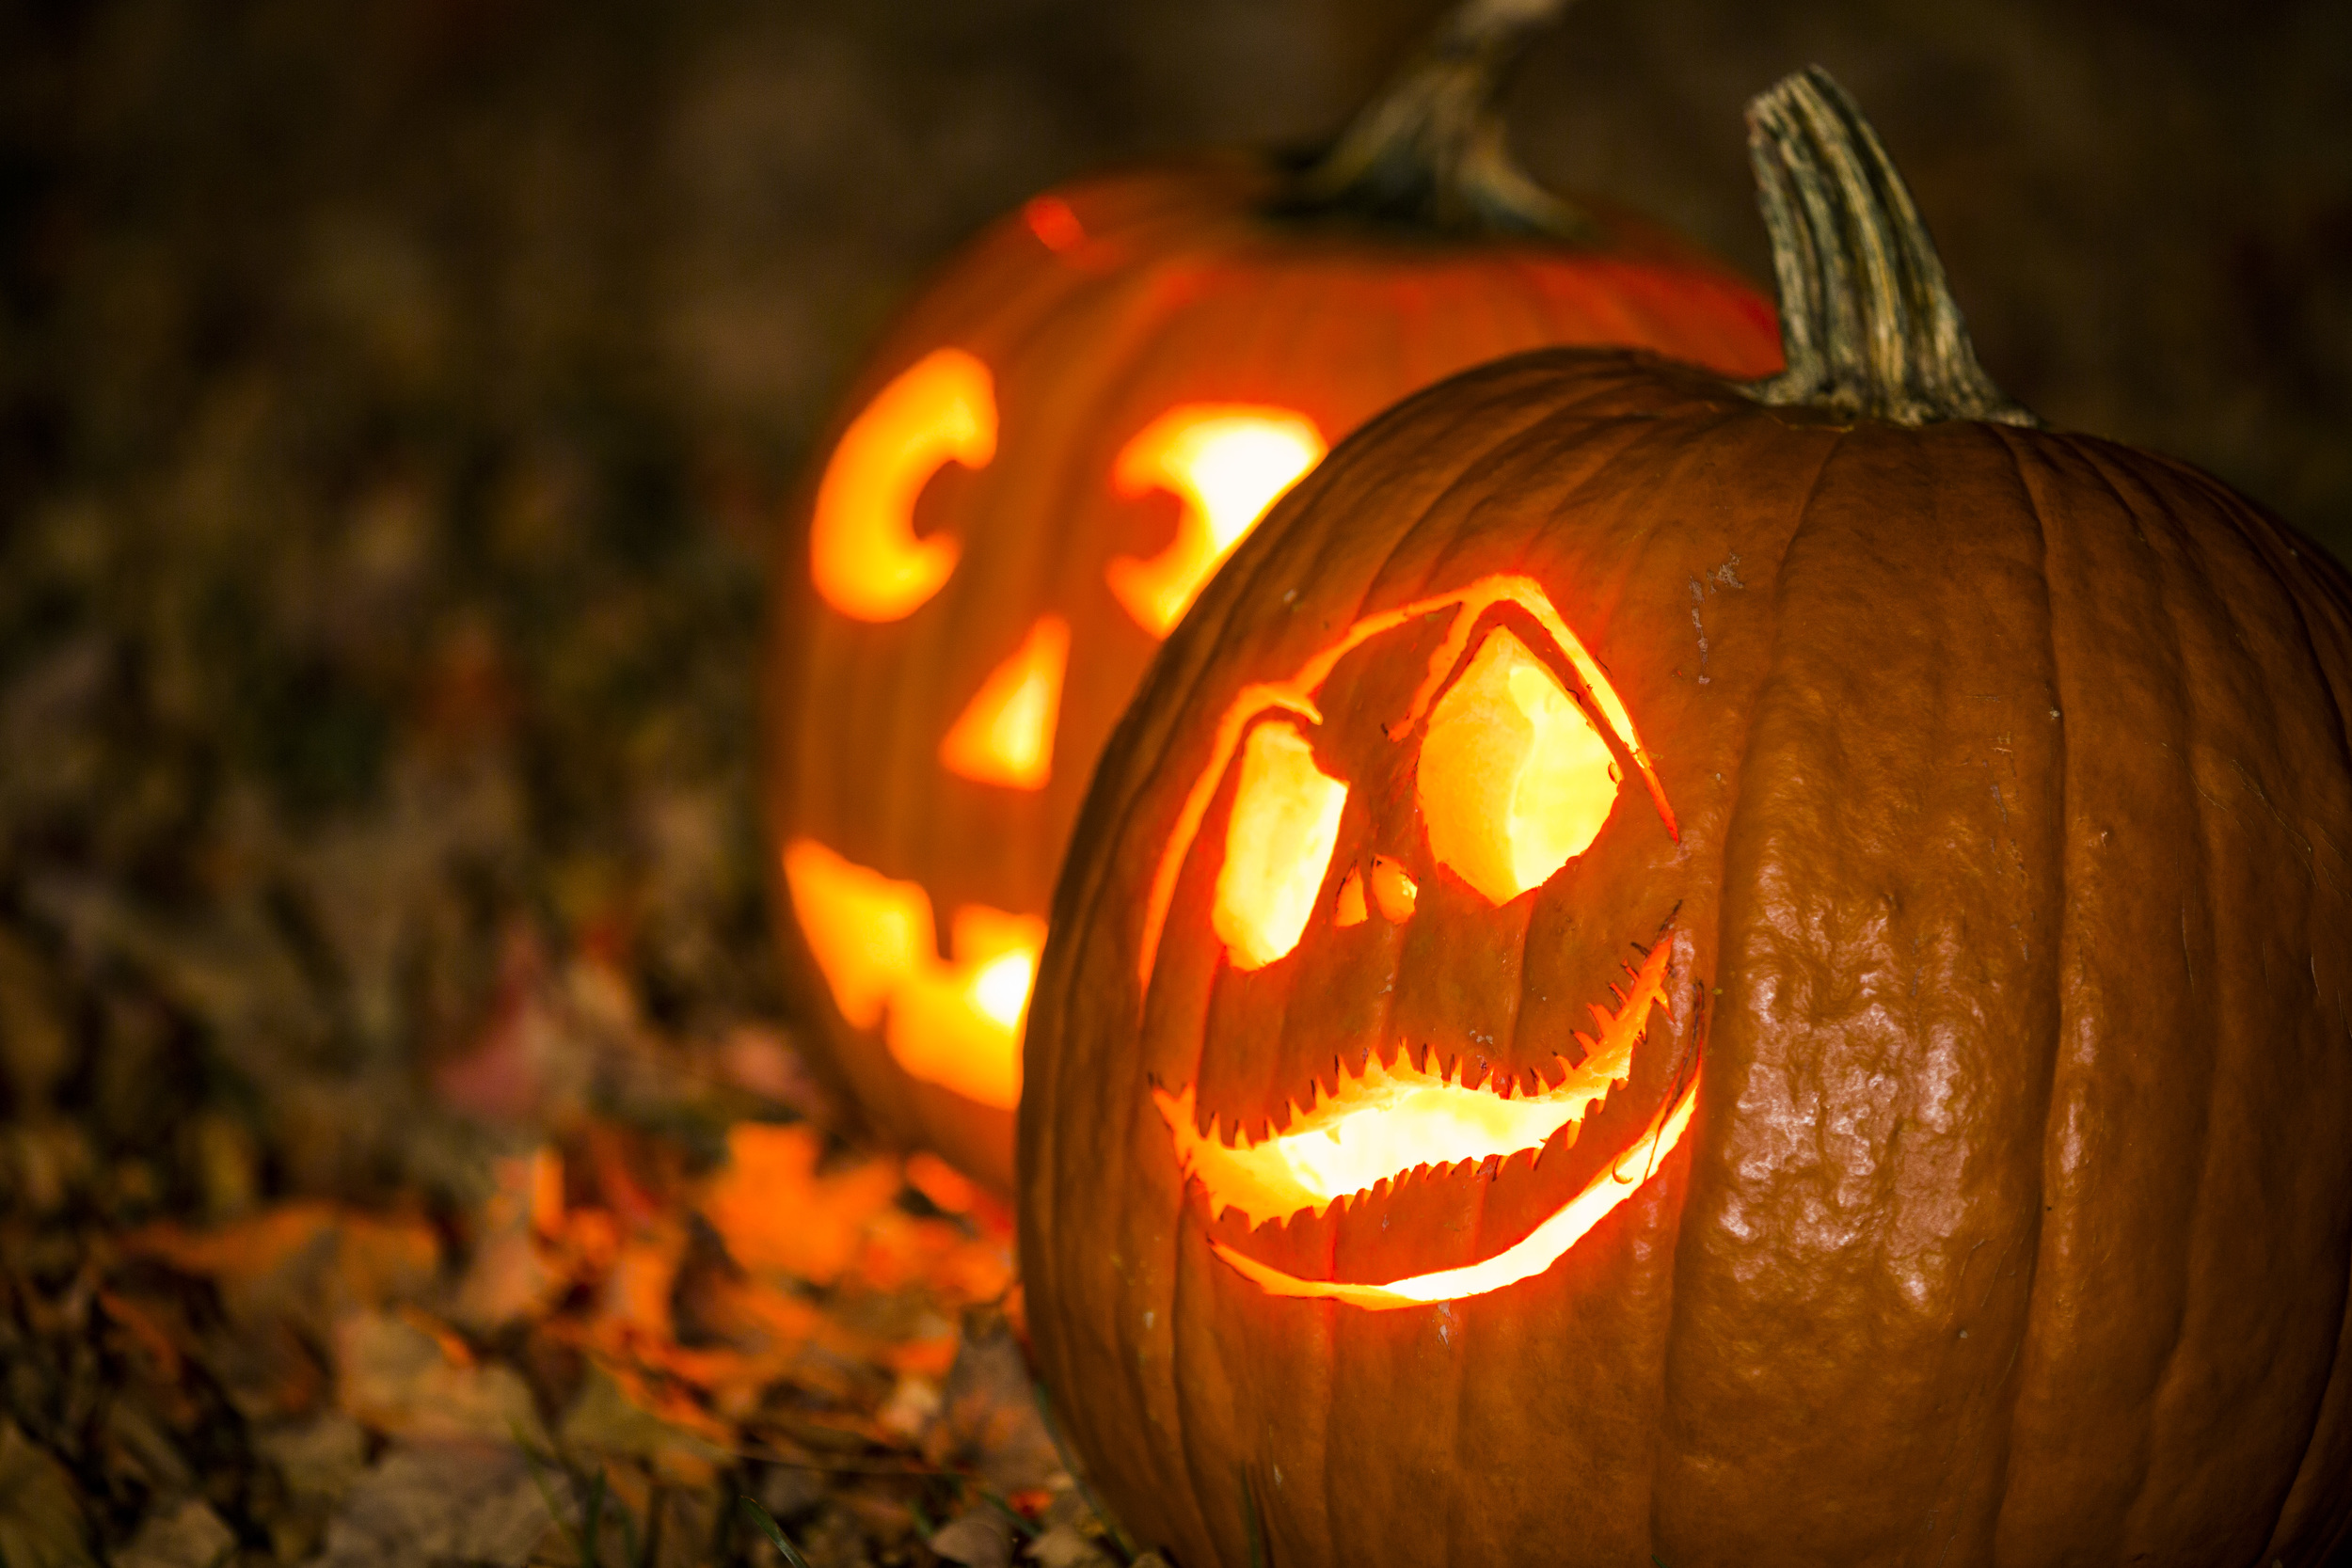 JACK-O-LANTERNS: Photographing Jack-O-Lanterns is relatively easy if you use a tripod and a long exposure.